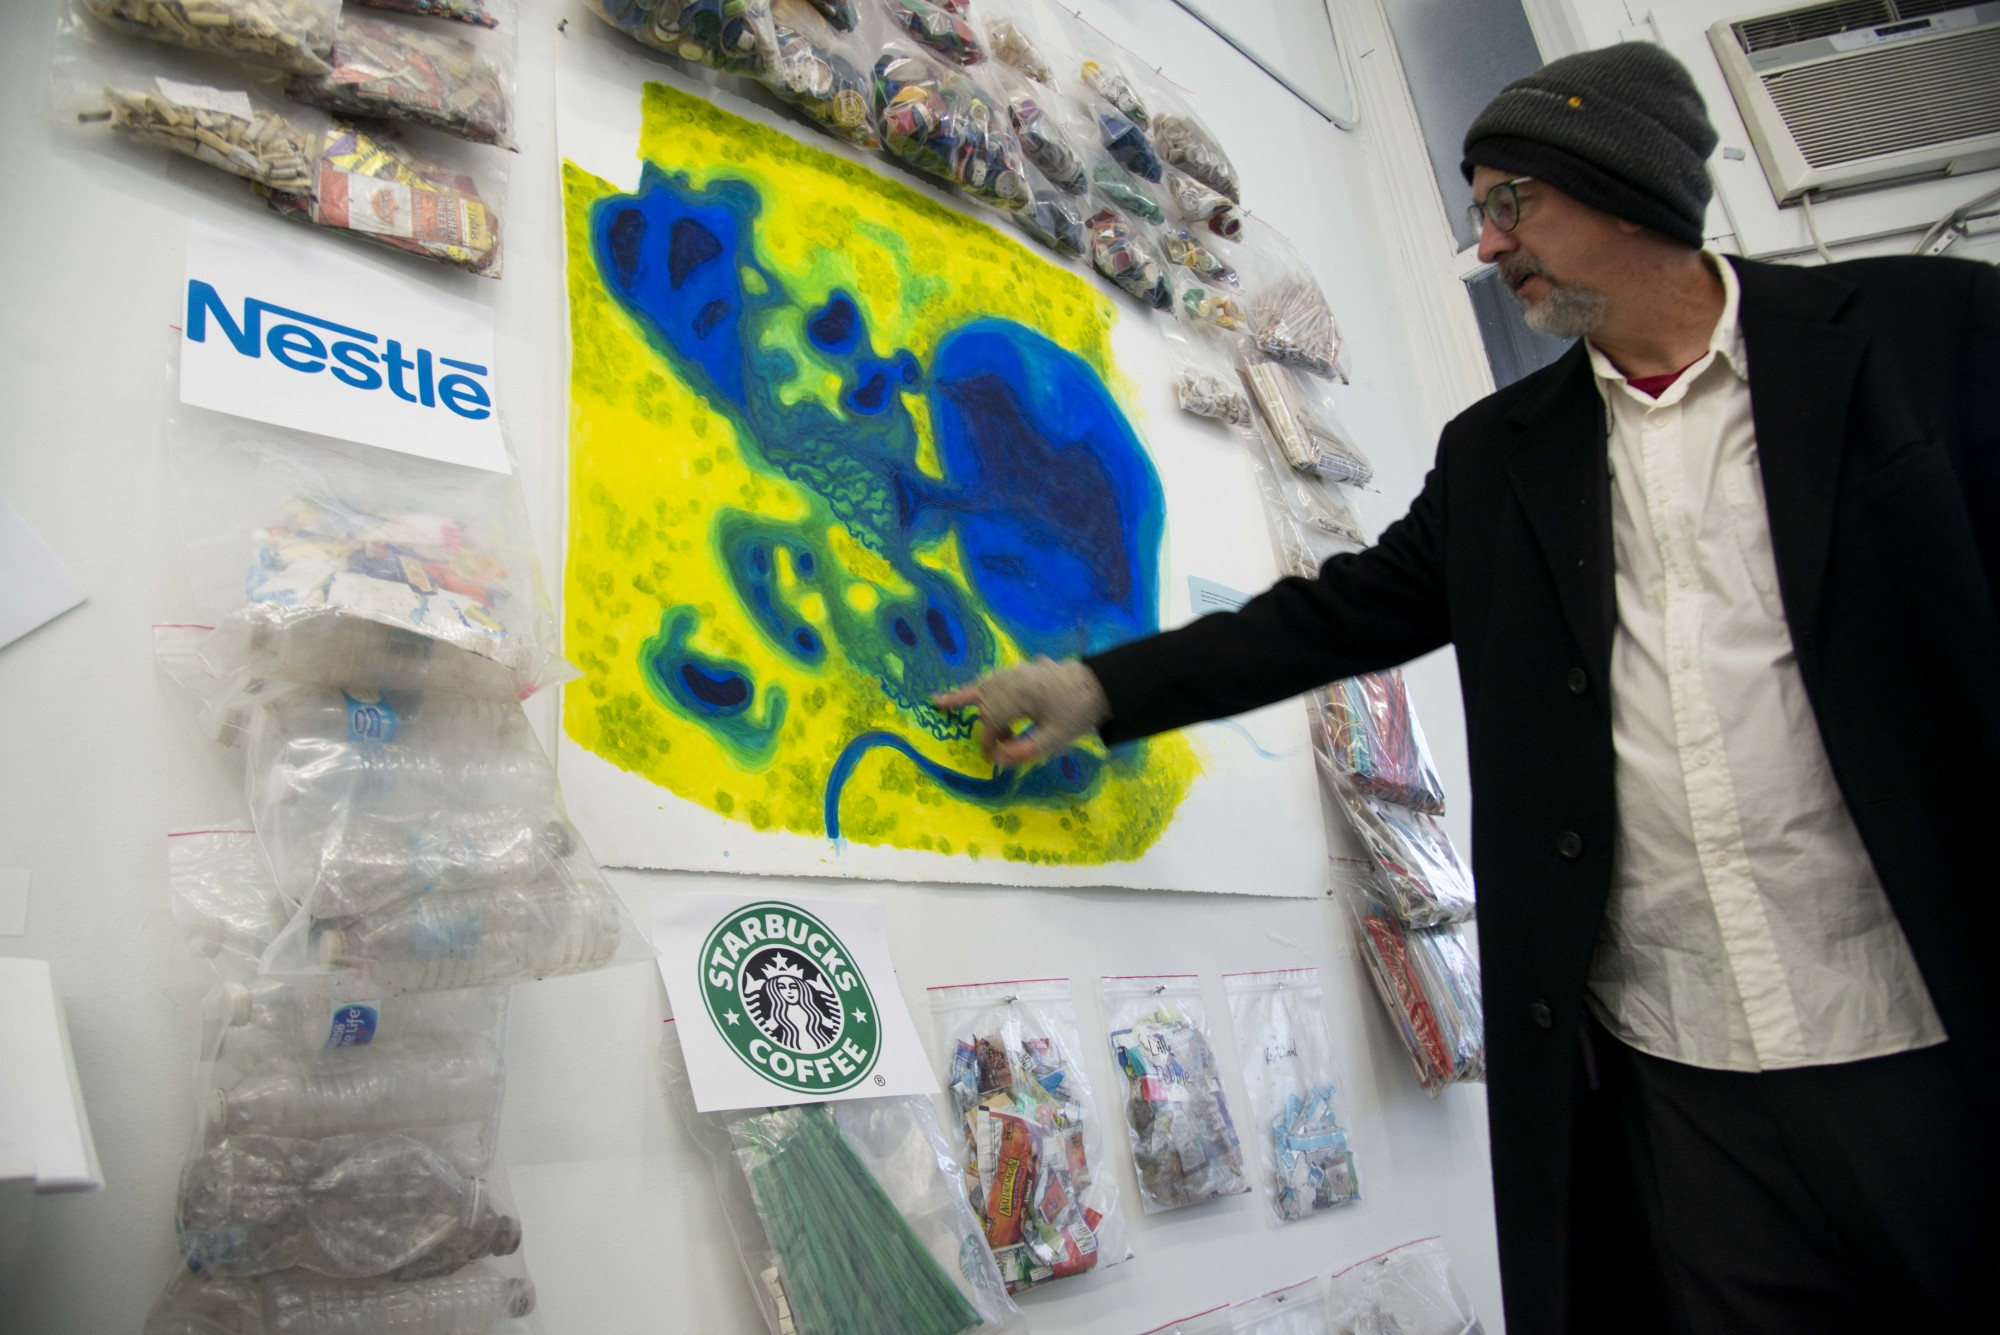 <p>Sean Connaughty, a University art professor, explains his proposal for adding new rice fields around Lake Hiawatha to improve water quality at the White Page gallery in South Minneapolis on Friday, Nov. 19. The lake, formerly called Rice Lake, is critical habitat for wildlife and has been deeply impaired by storm water pollution from South Minneapolis.</p>